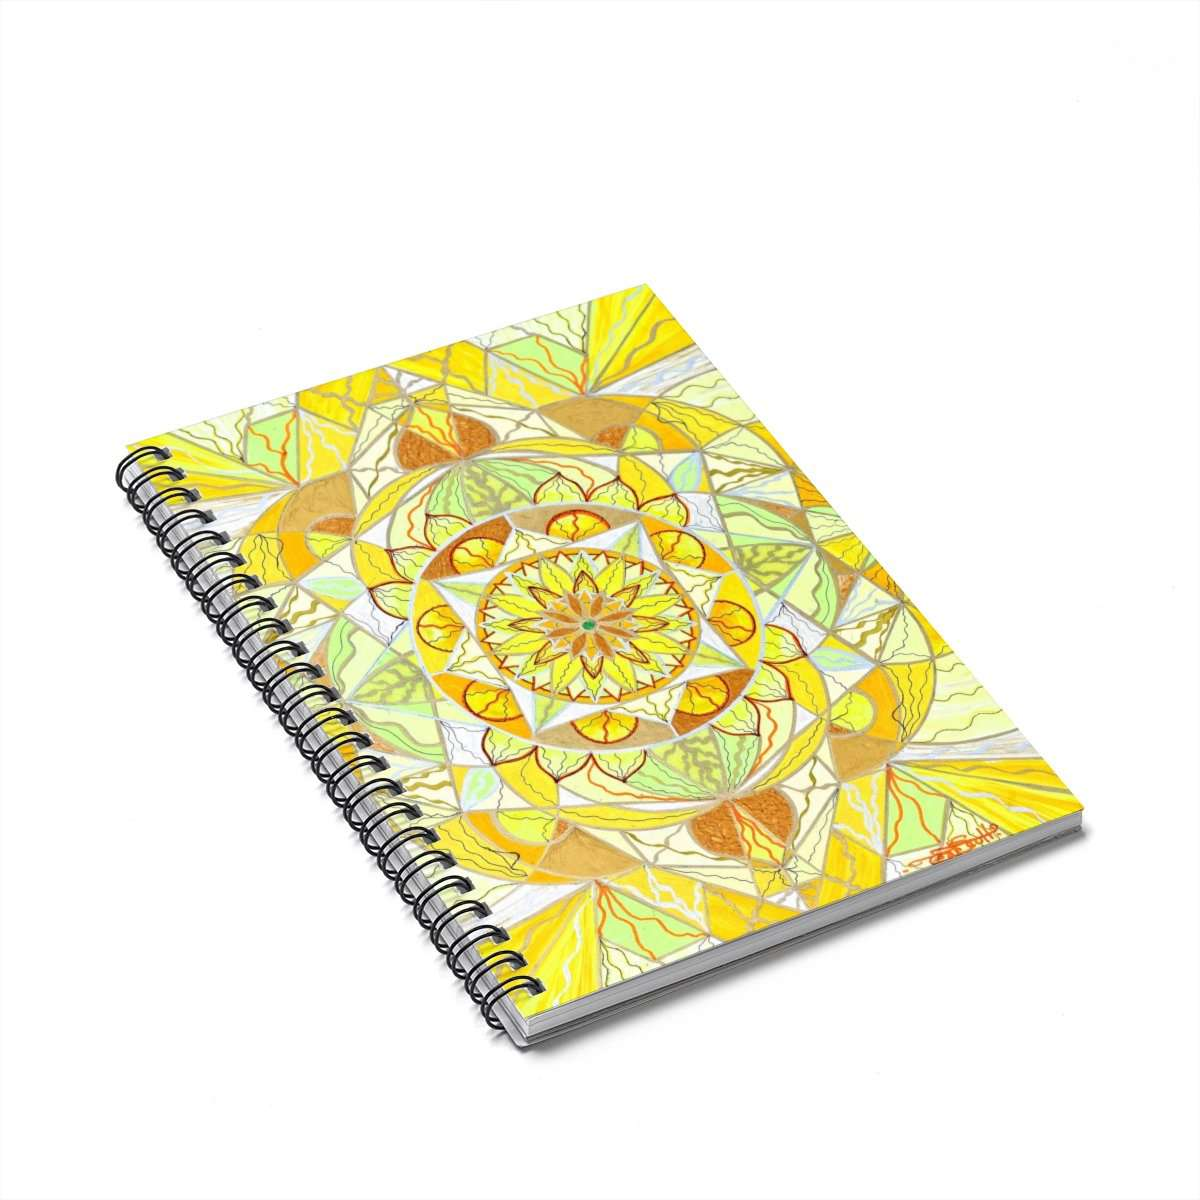 Joy - Spiral Notebook